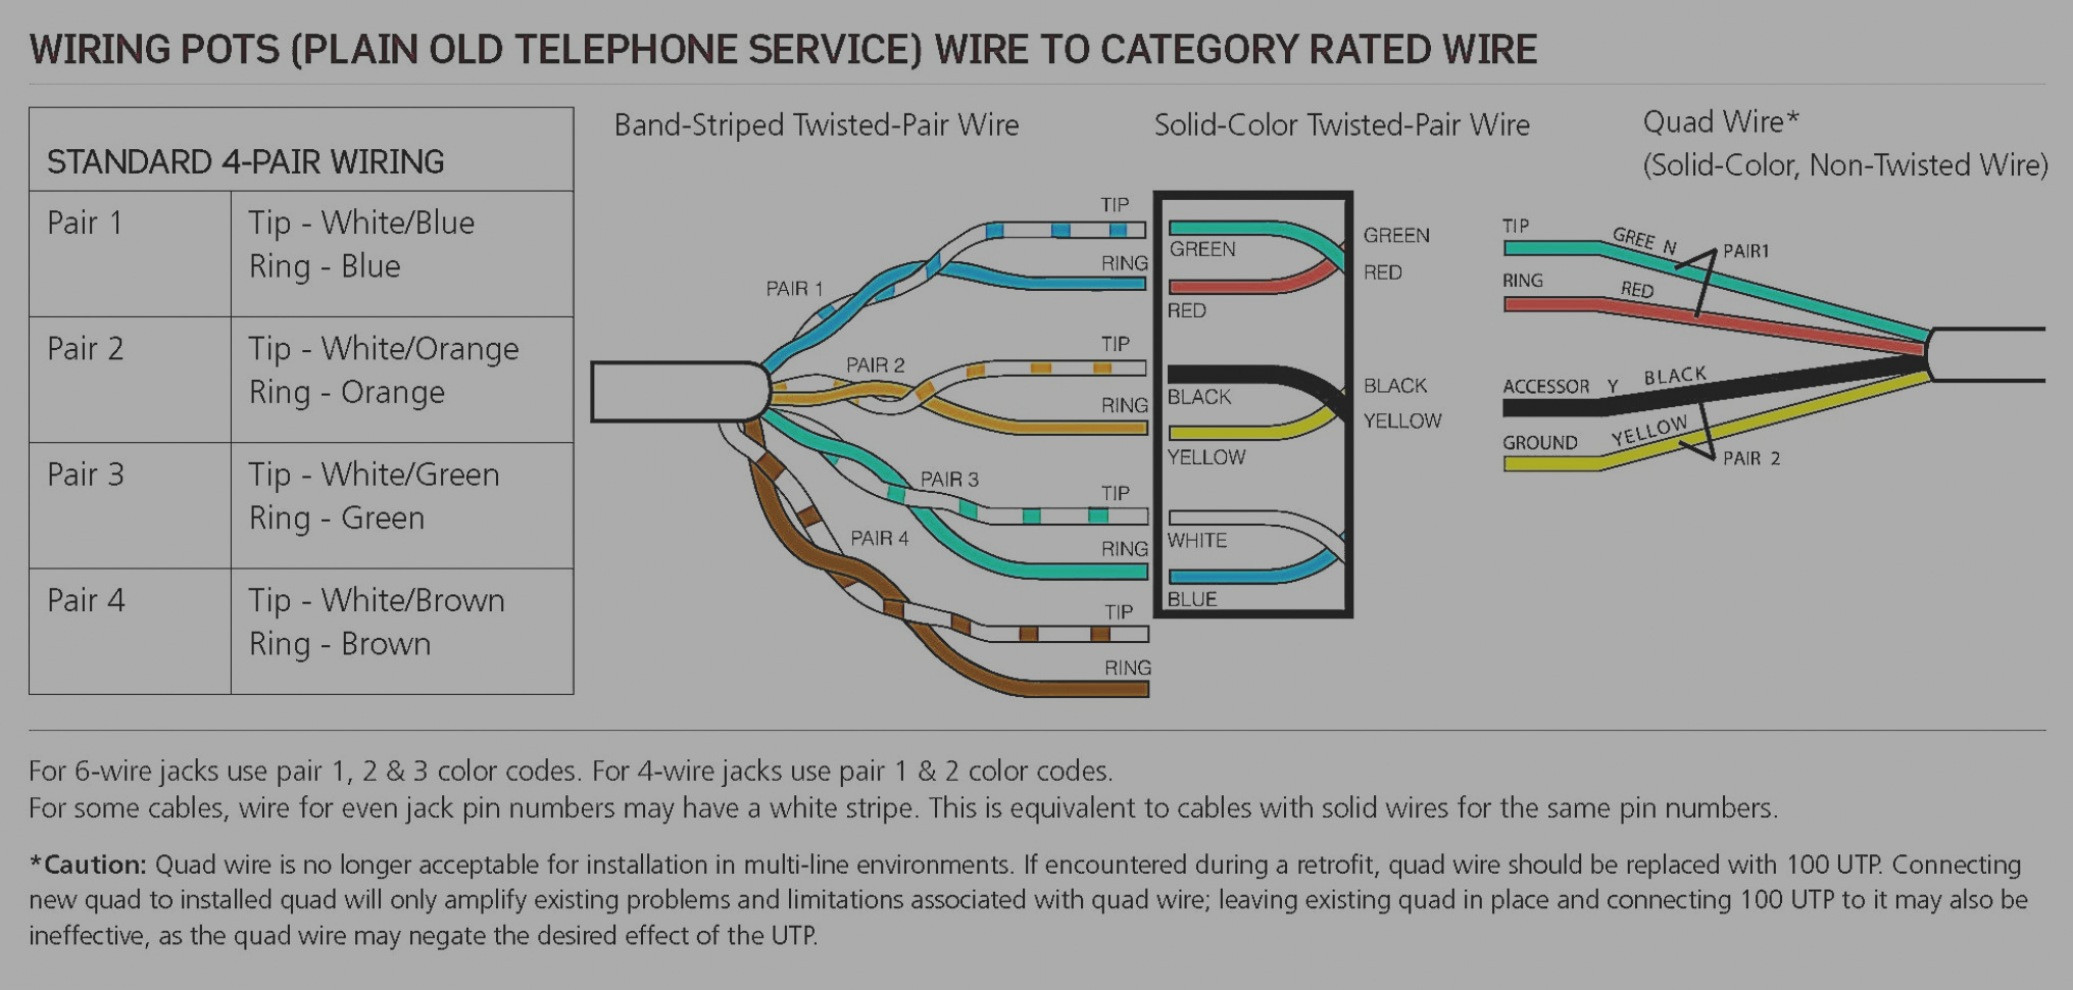 Ch 4308 Wire Phone Jack Dsl Free Download Wiring Diagrams Pictures Wiring Schematic Wiring